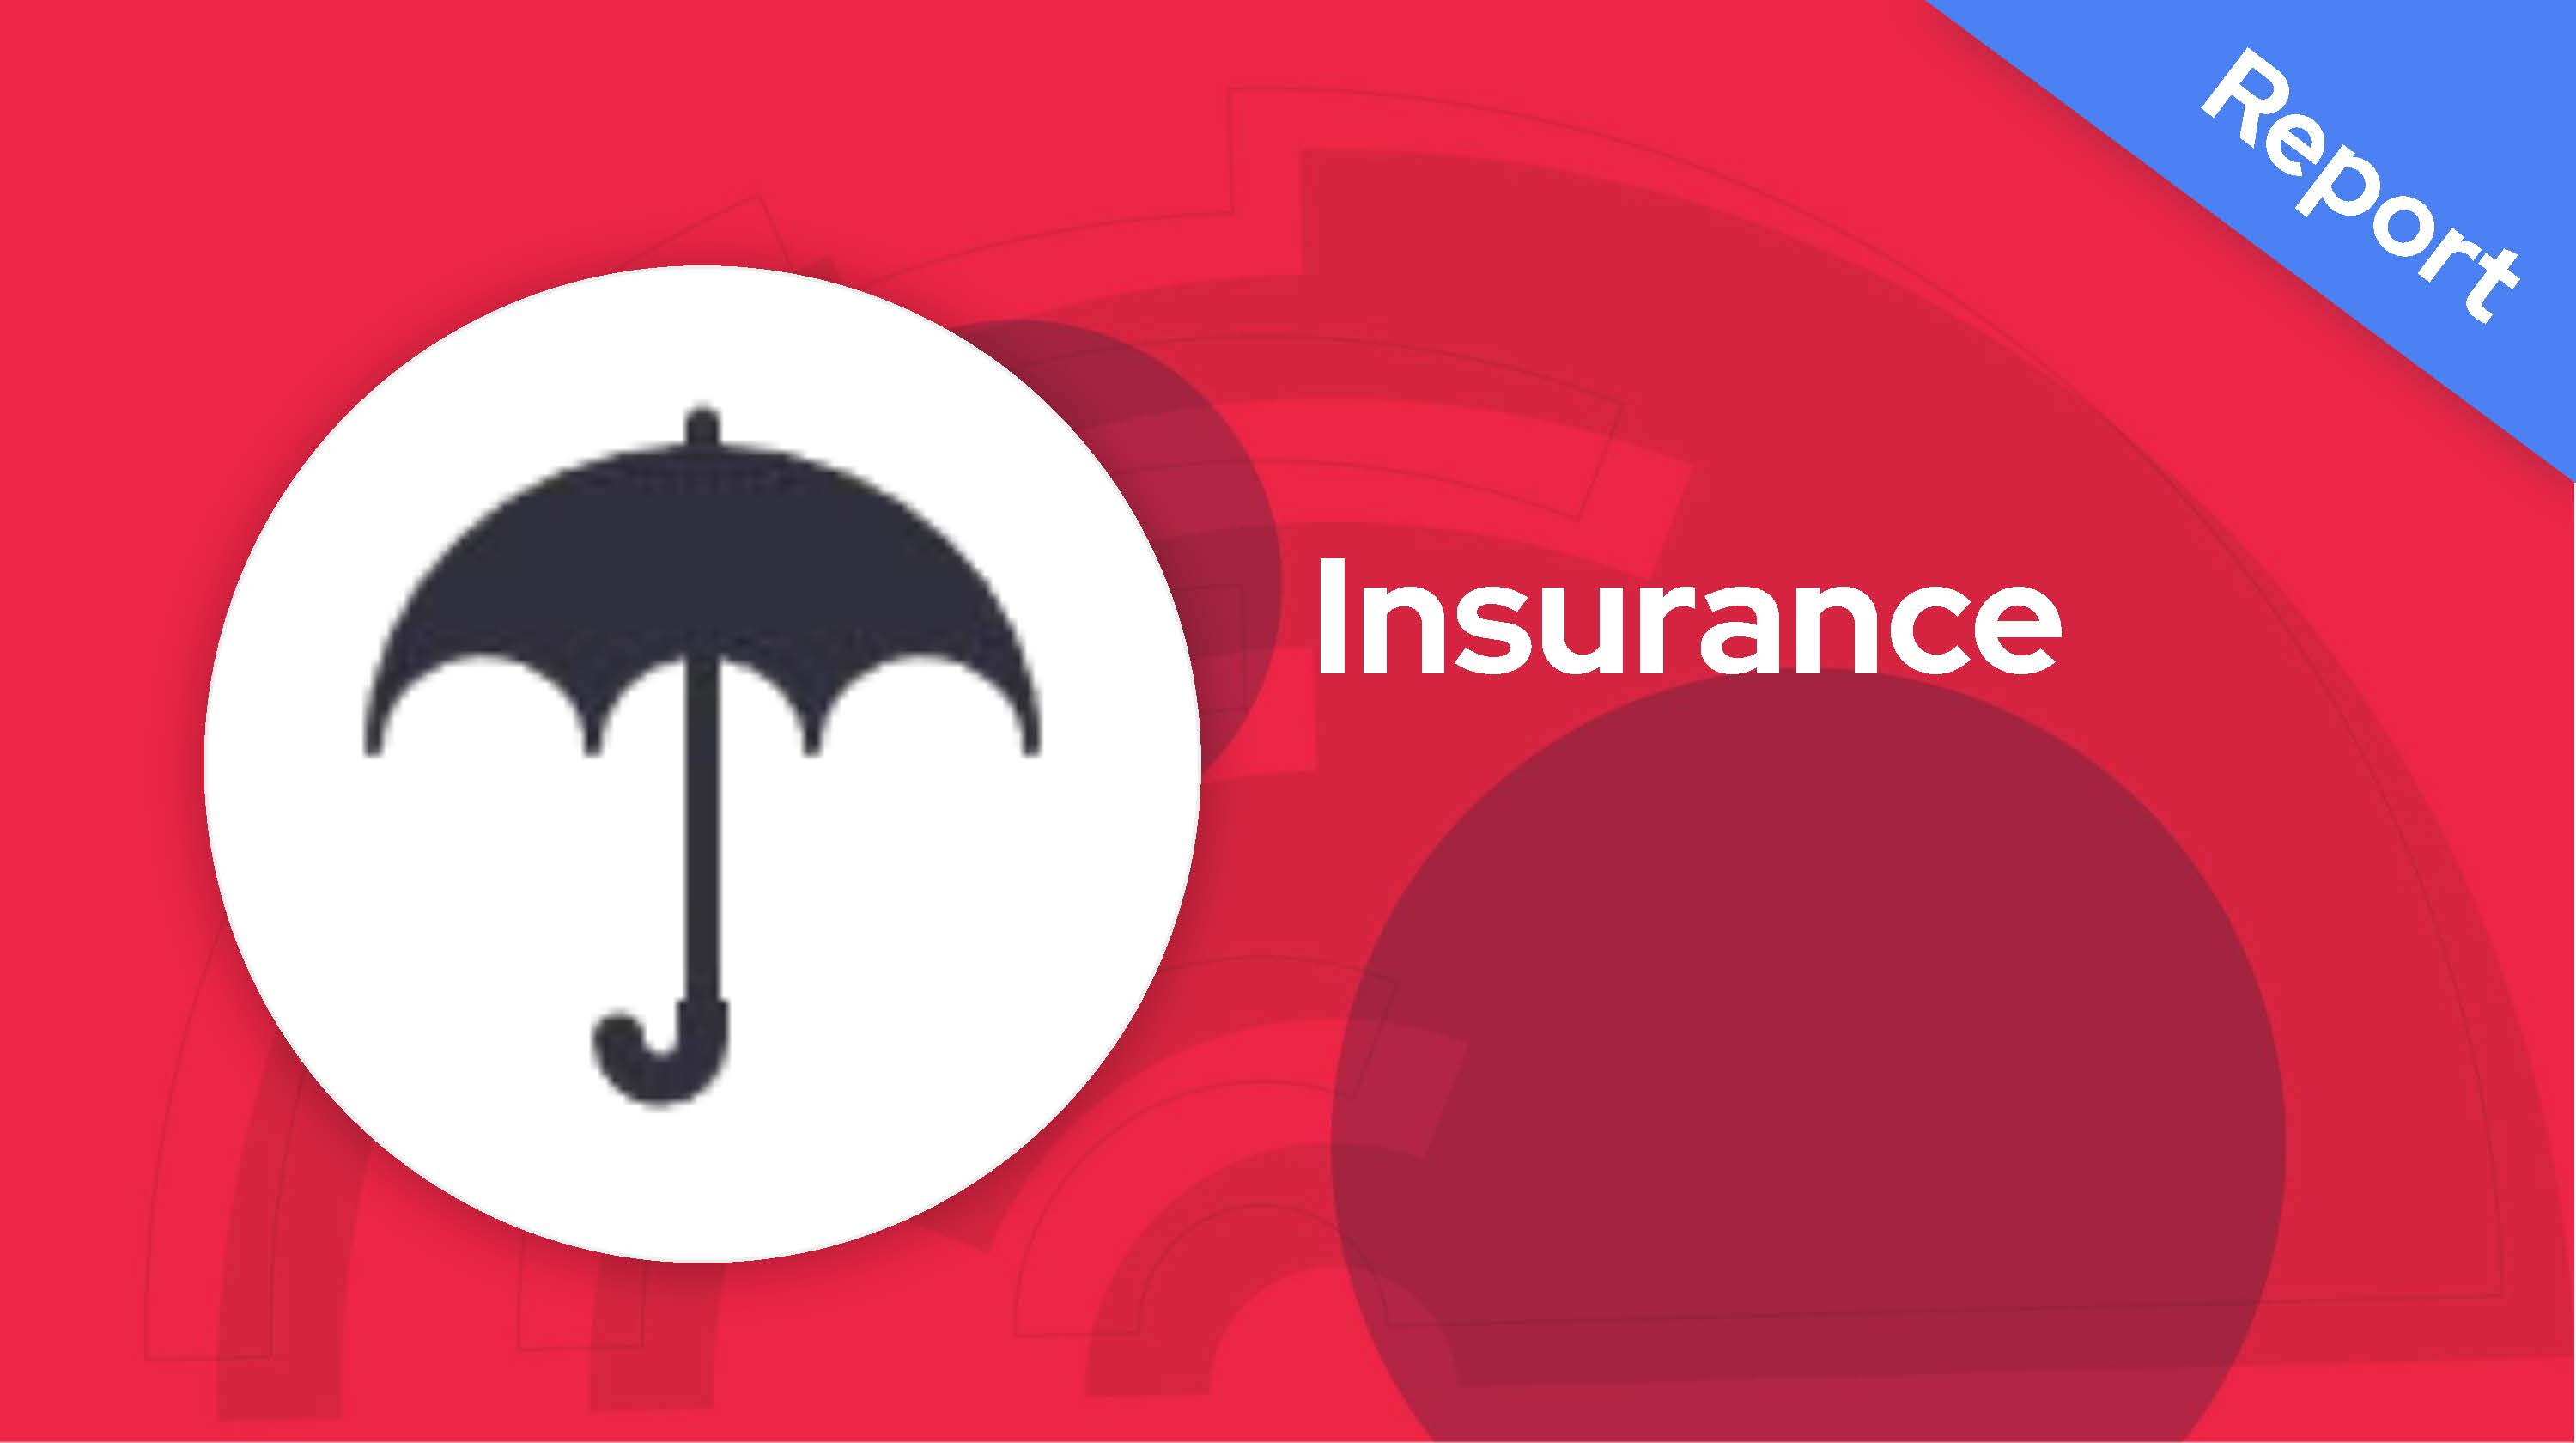 Paid Social Snapshot: Insurance Providers